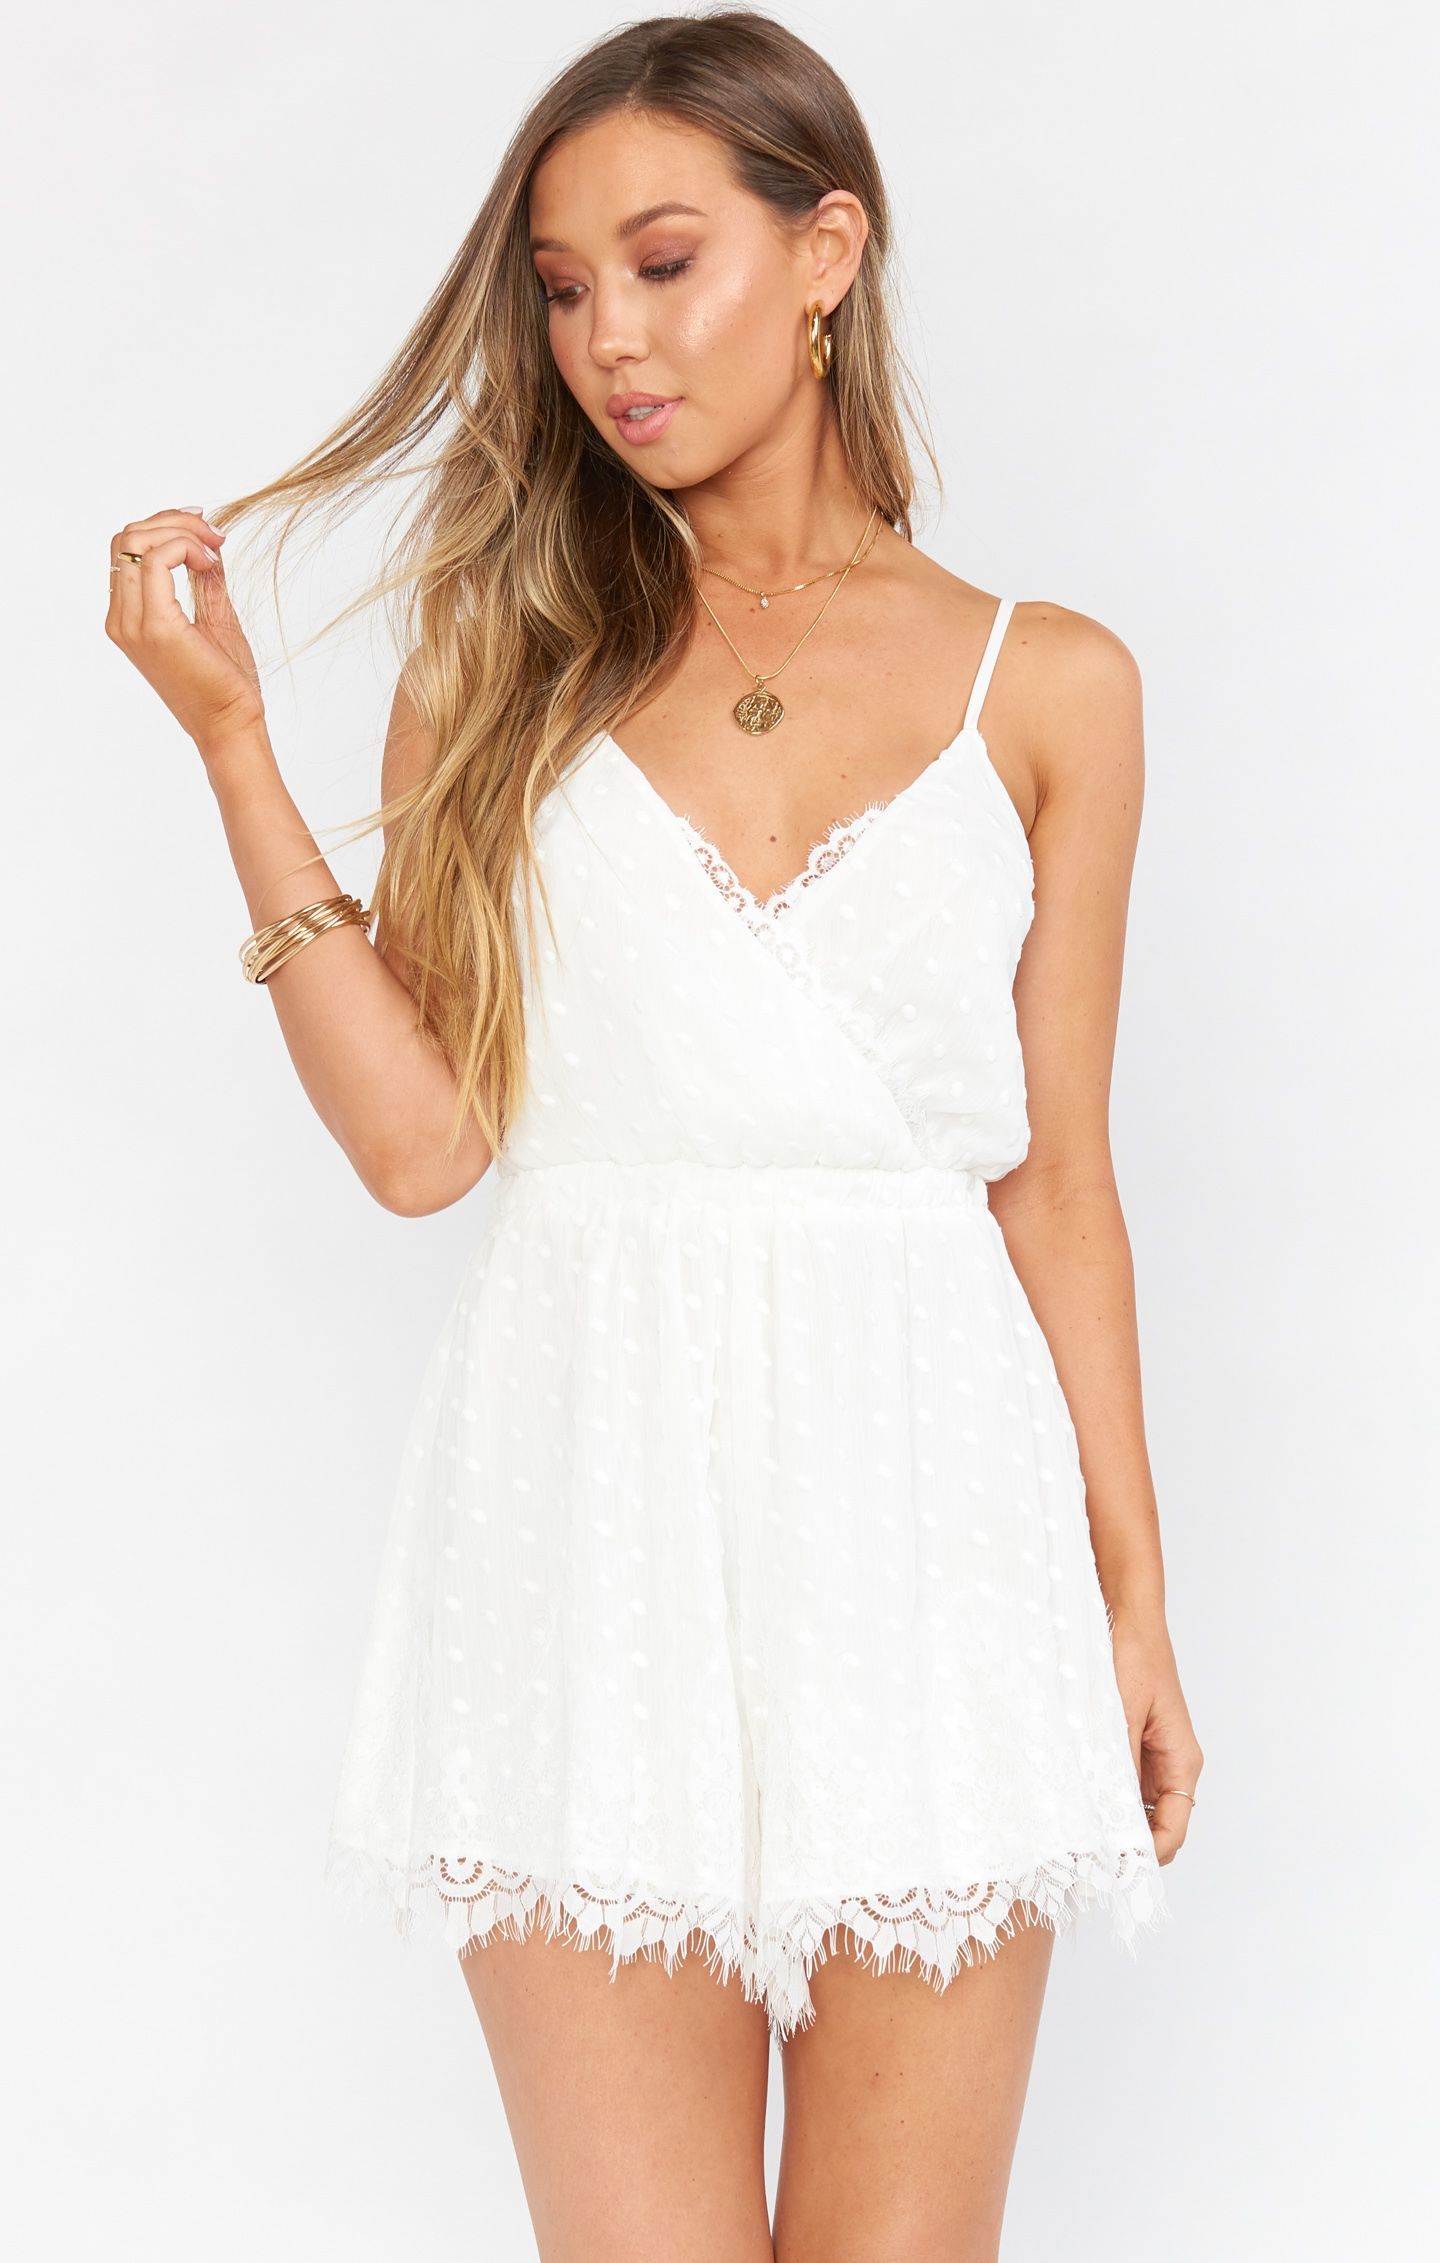 Olympia Romper White Lace Bridesmaid Get Ready Outfit Shower Dress For Bride Wedding Rompers [ 2263 x 1440 Pixel ]